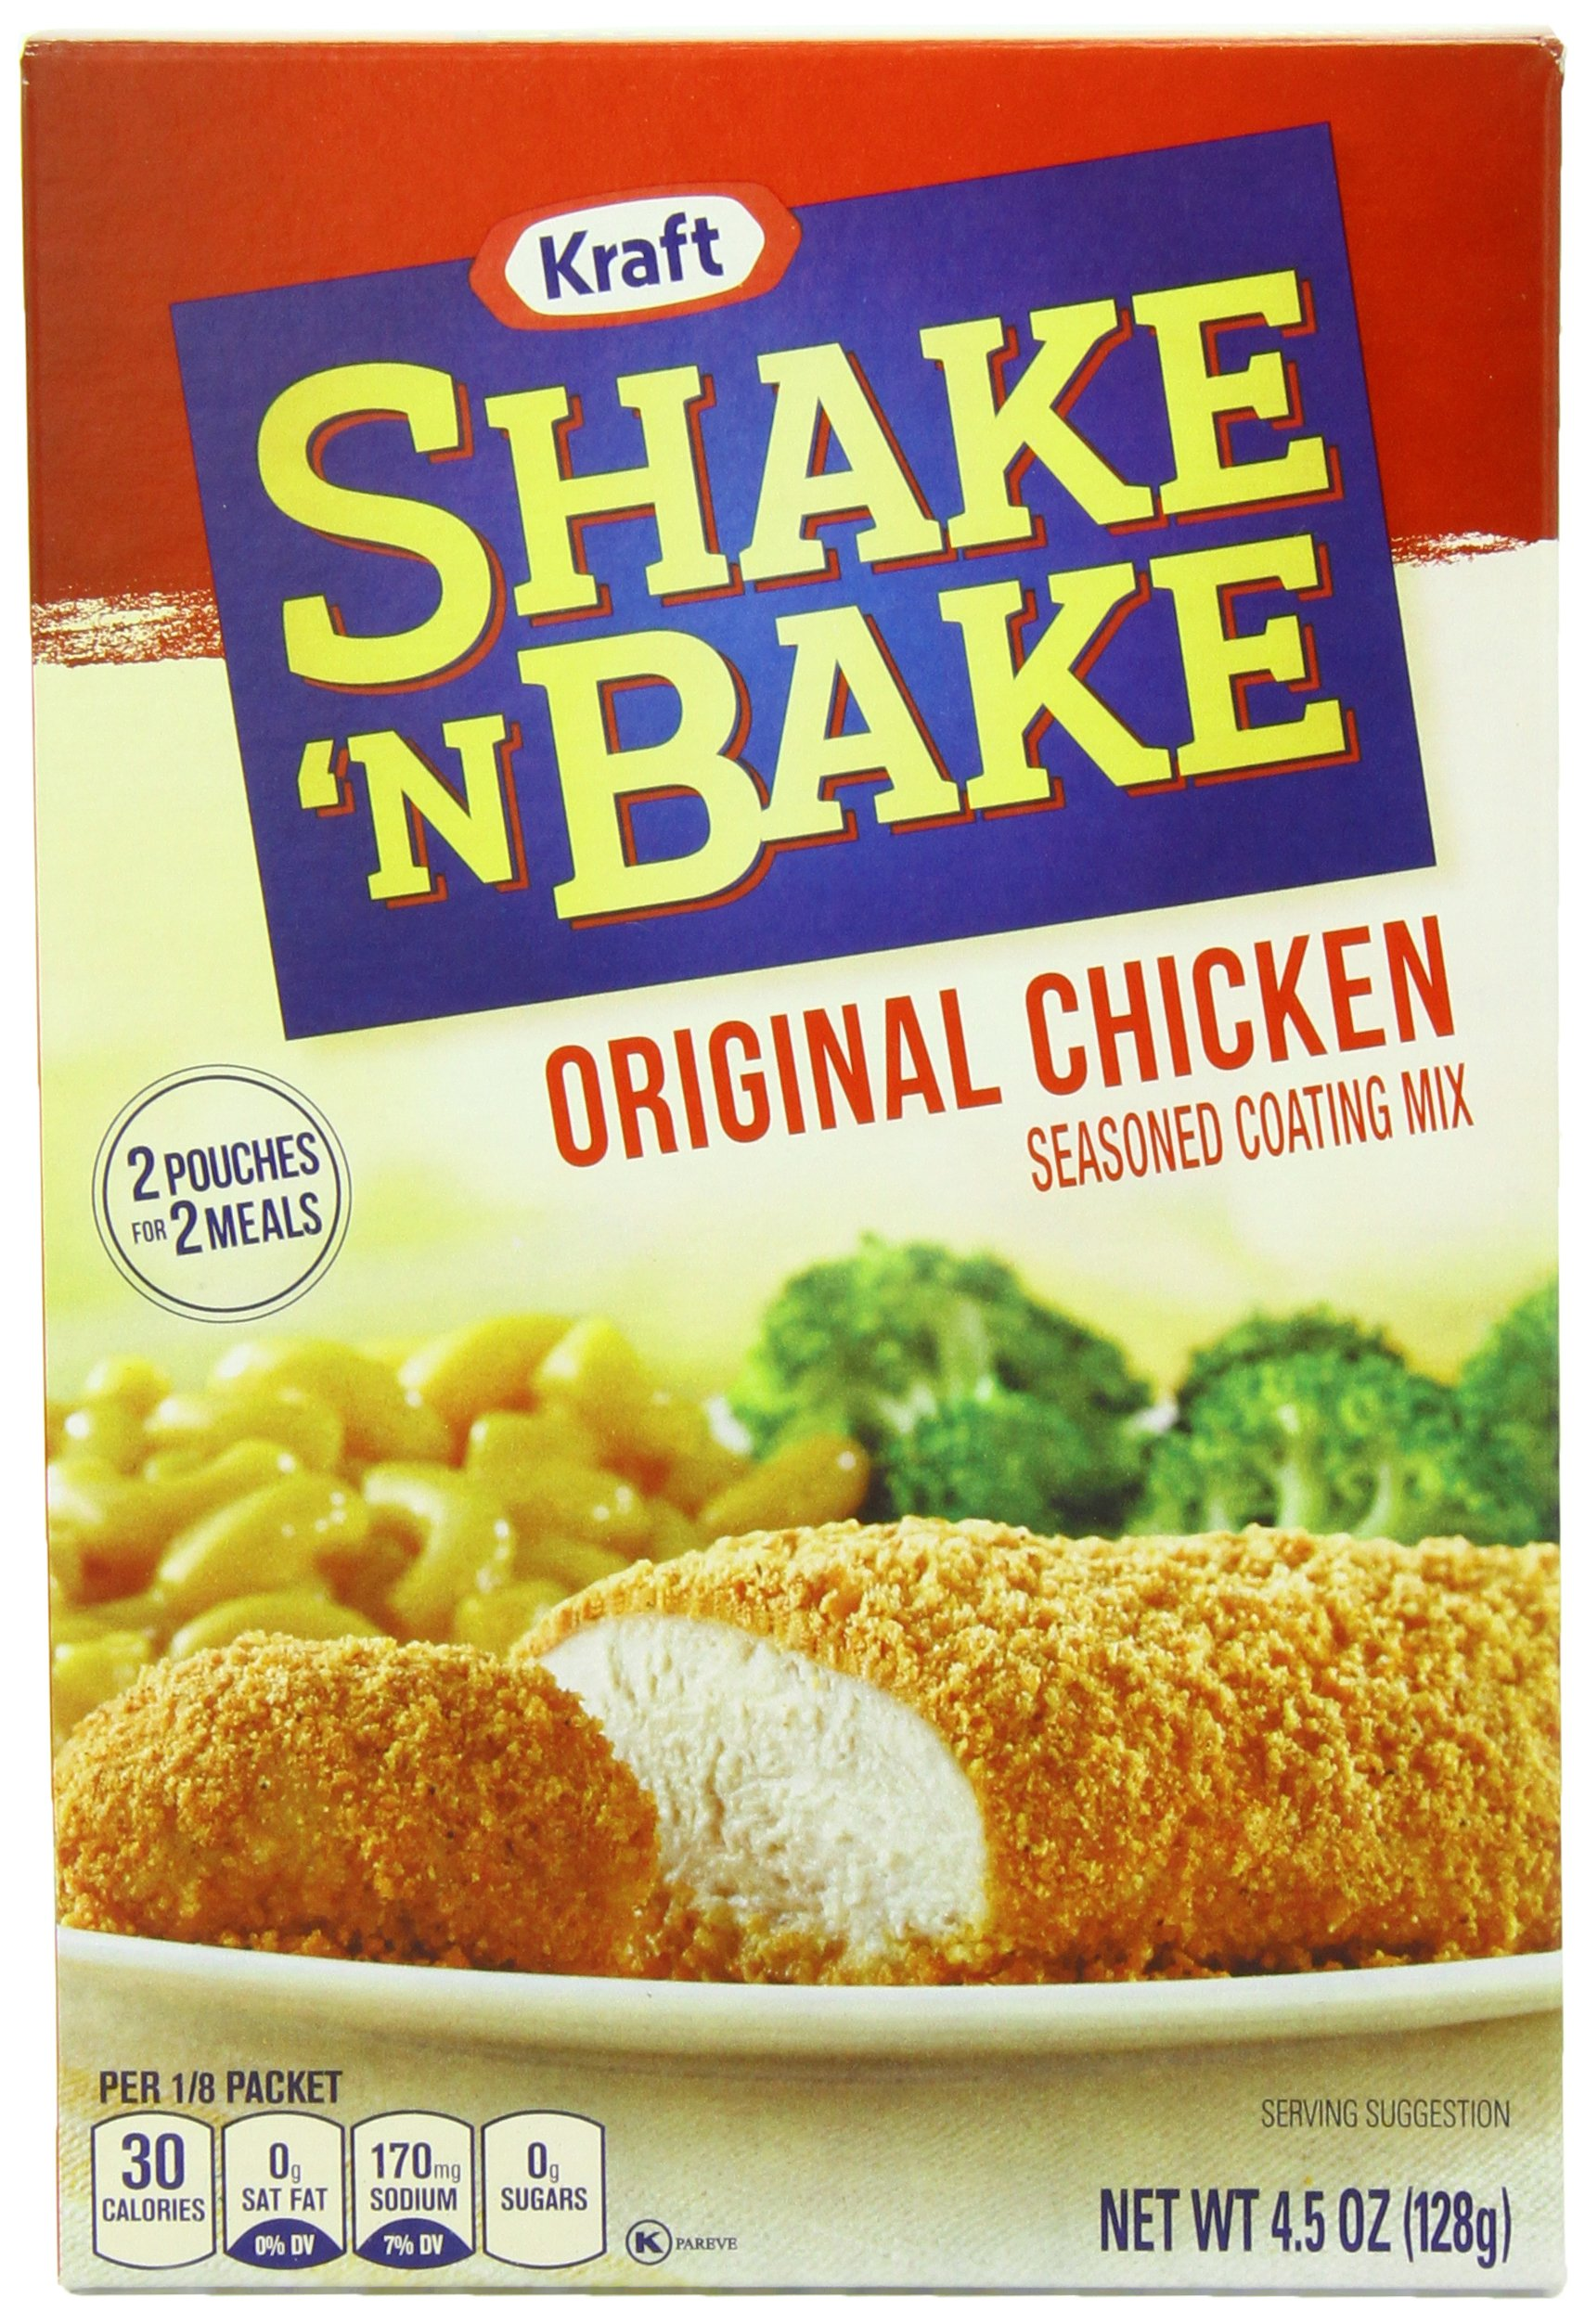 Kraft Shake N Bake Seasoned Coating Mix Box, Original Chicken, 4.5 Ounce (Pack of 12)